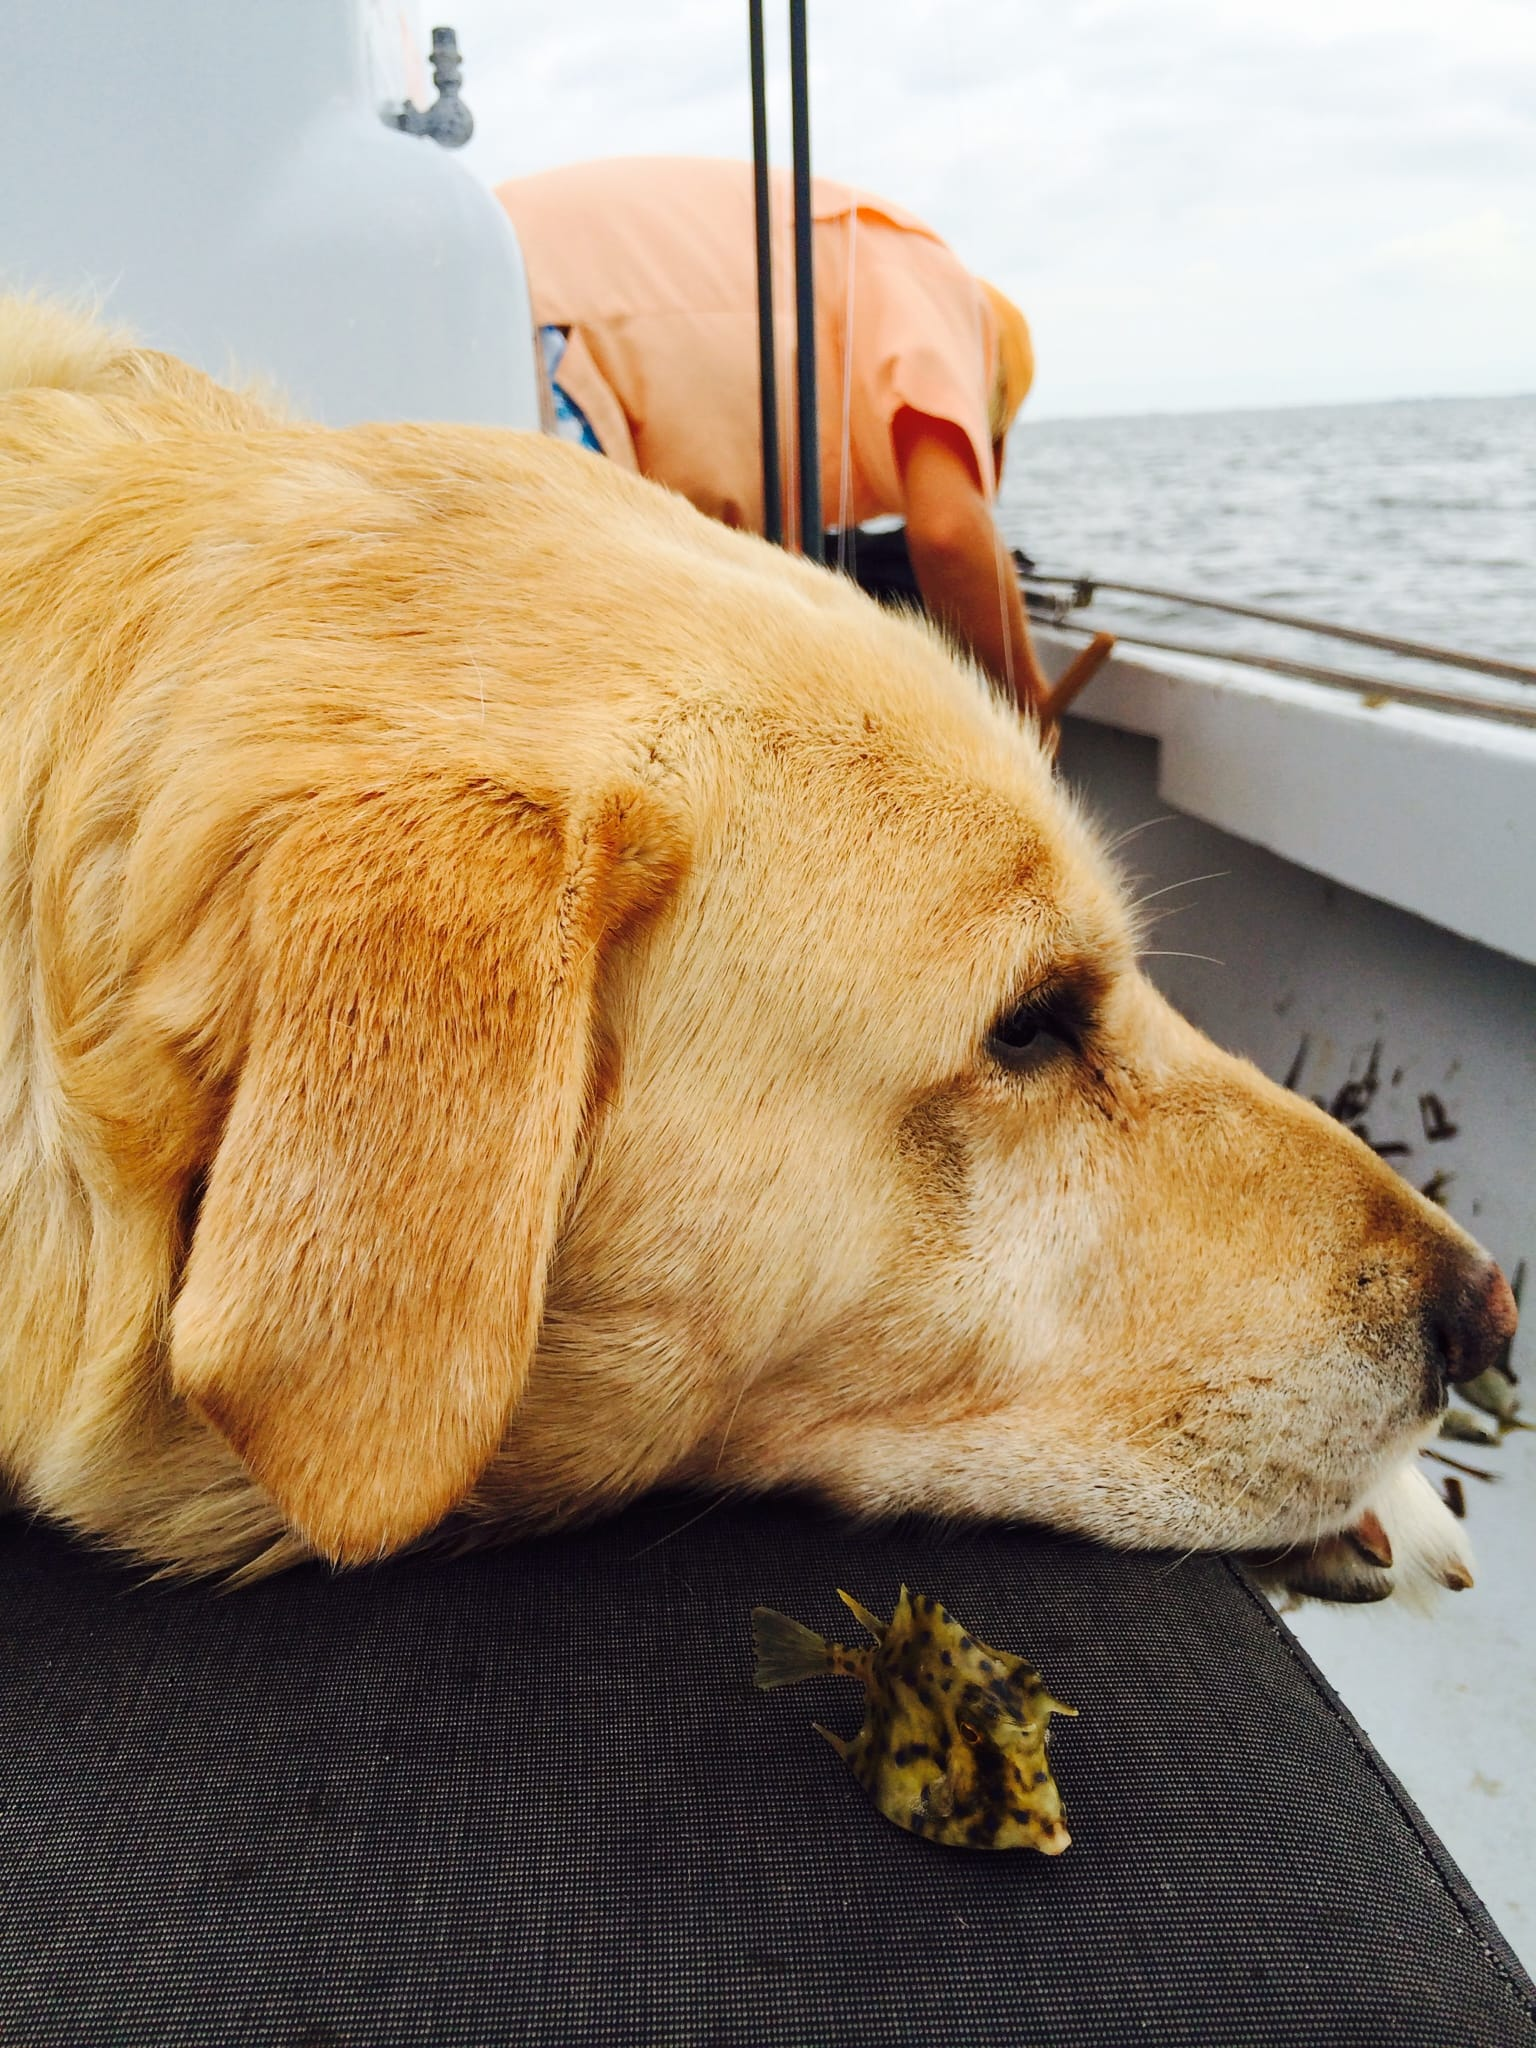 Hank with a cowfish, 10-22-14,, Sanibel Fishing & Captiva Fishing & Fort Myers Fishing Charters & Guide Service.